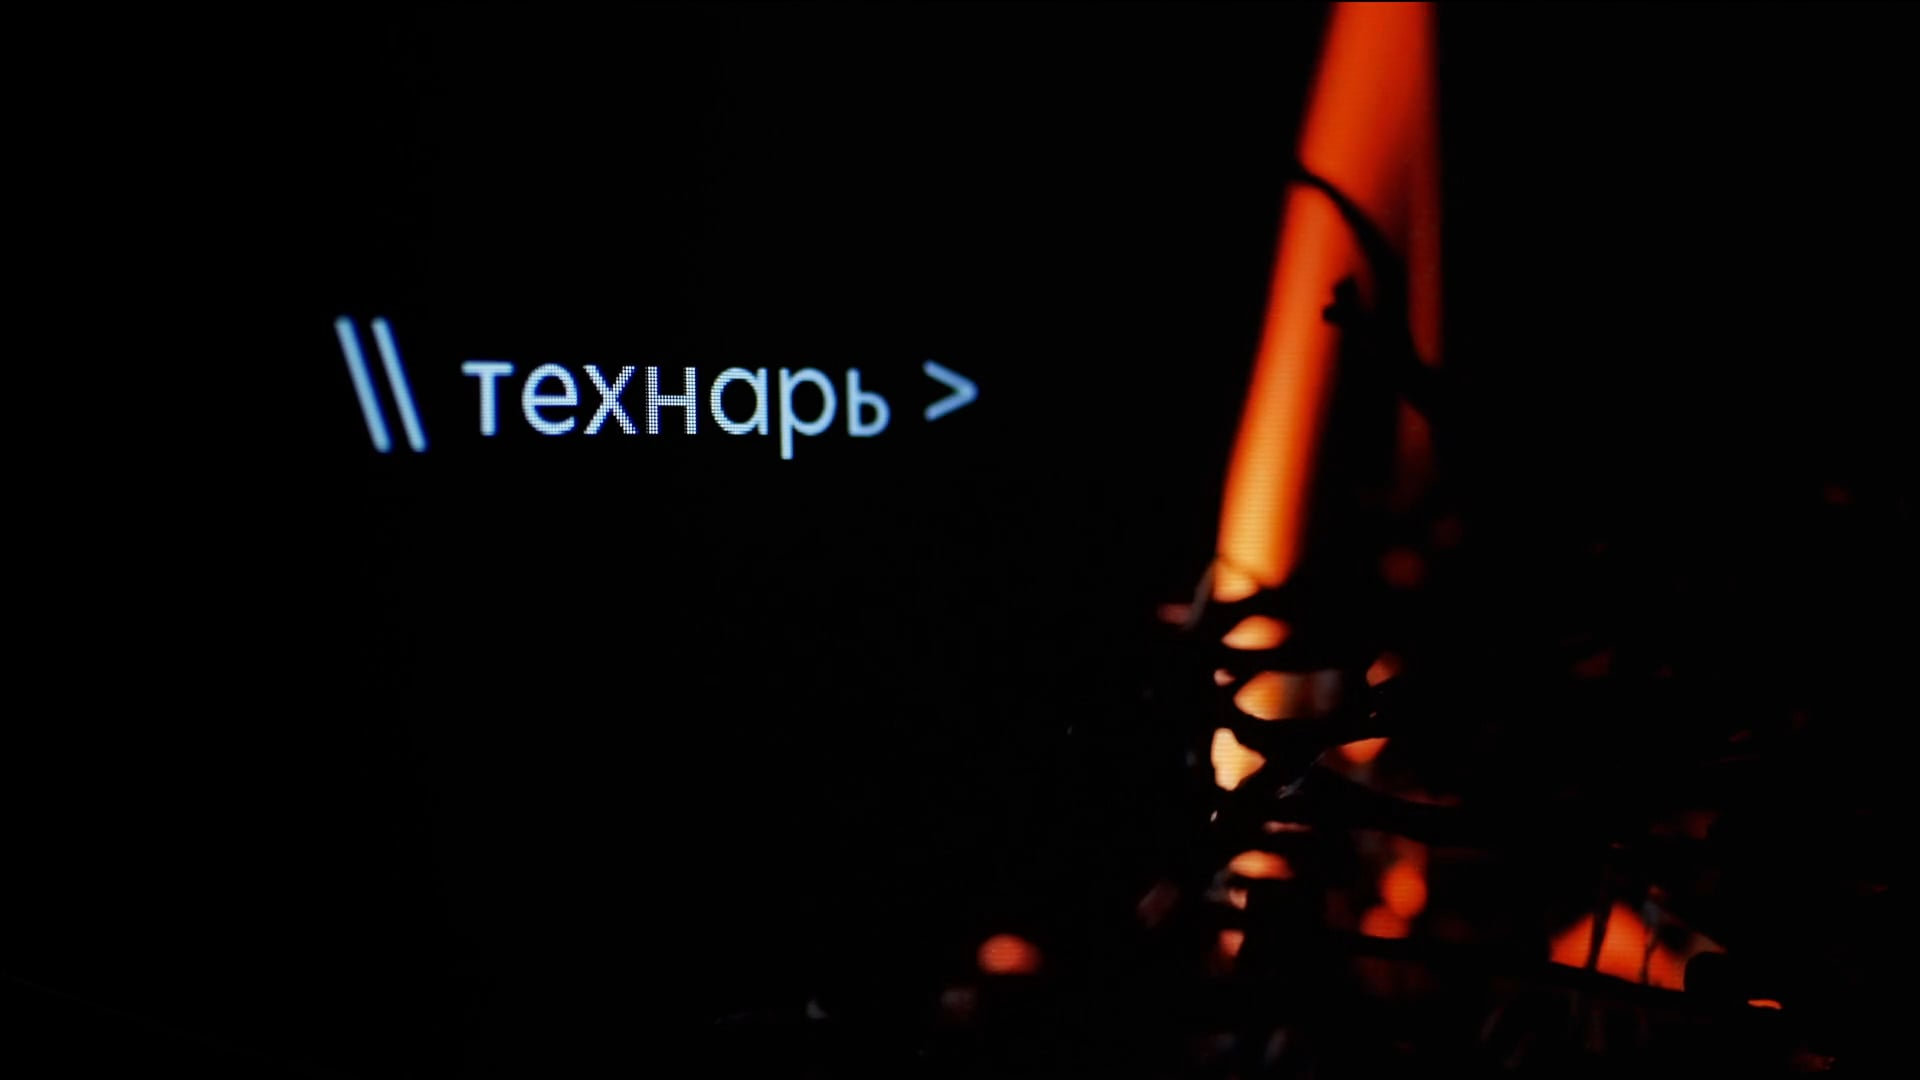 TECHIE opening titles